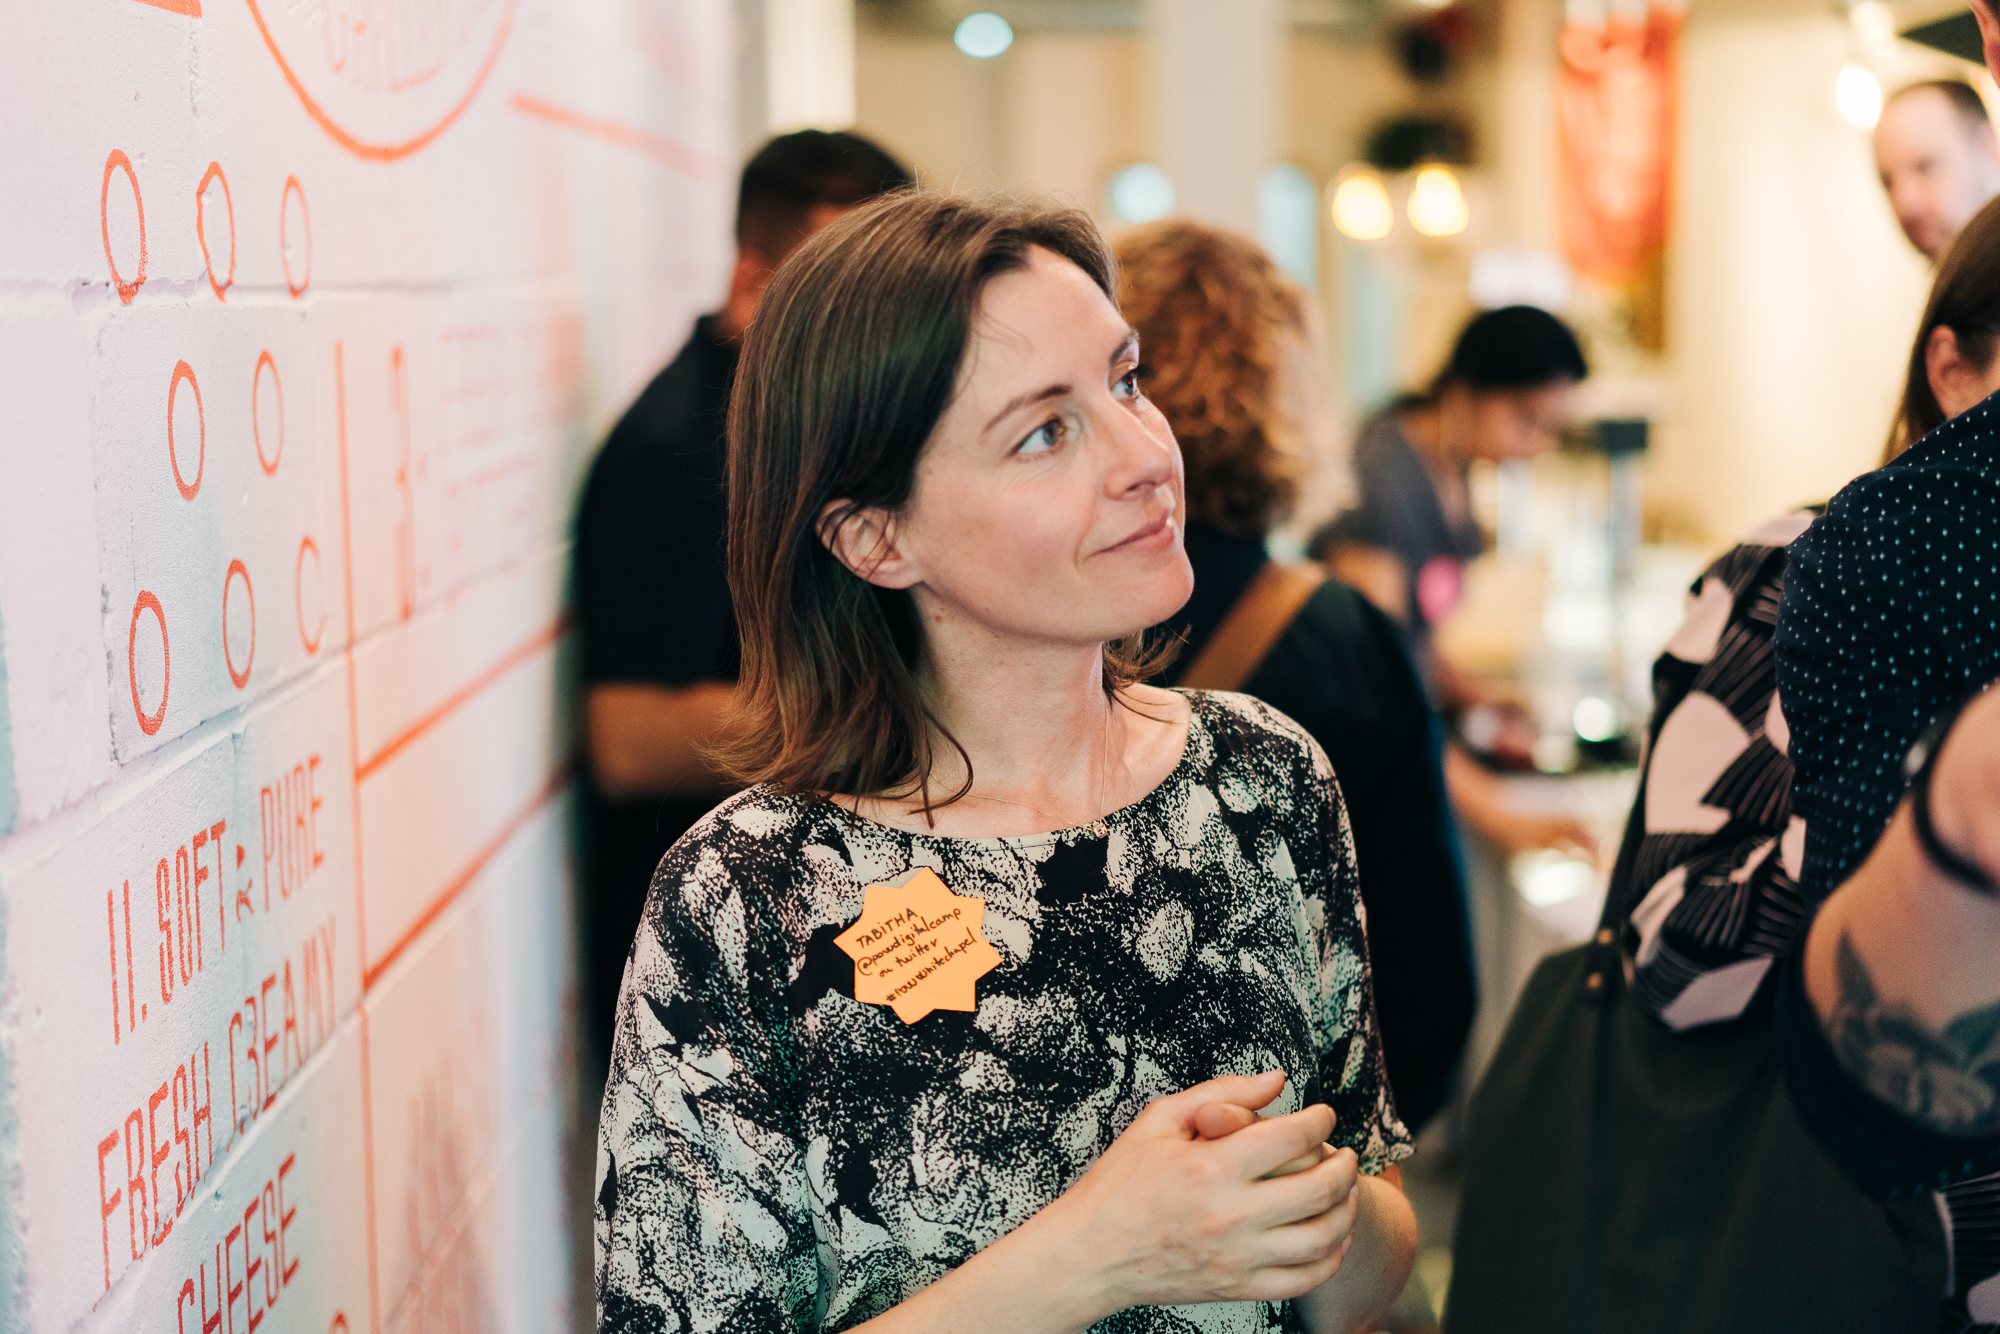 Tabitha Stapely at POW Digital Camp meetup in Whitechapel